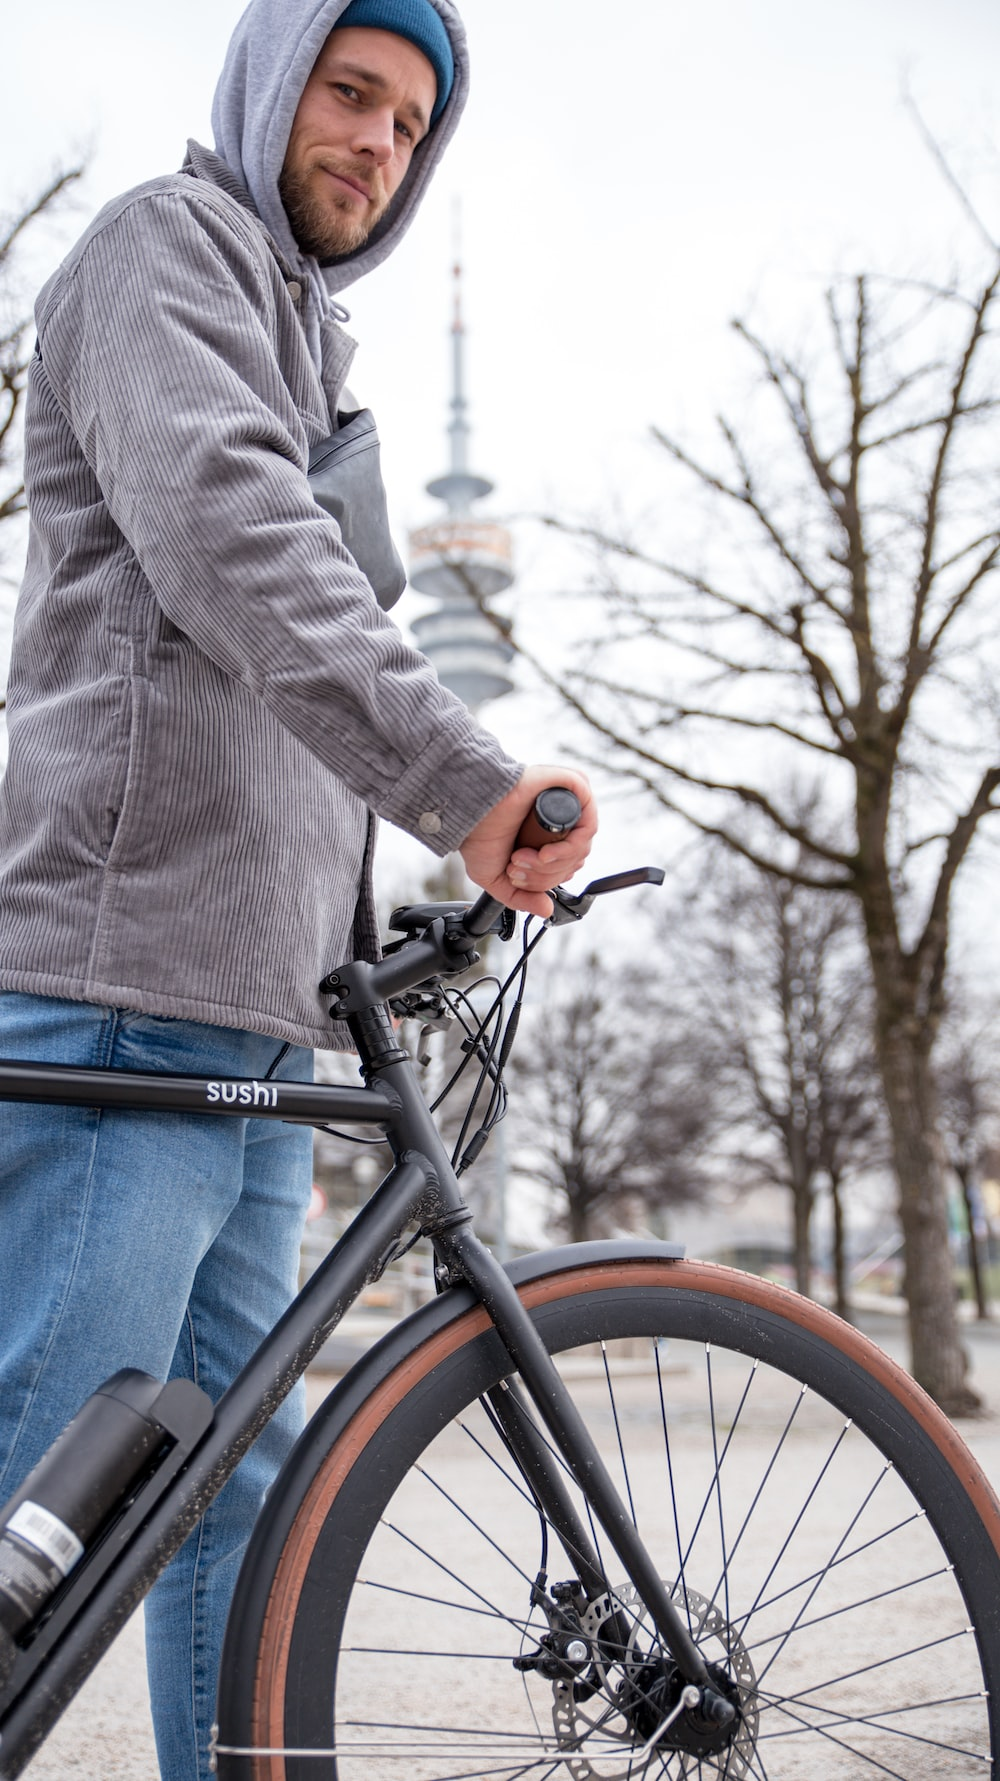 person in gray sweater and blue denim jeans riding black bicycle